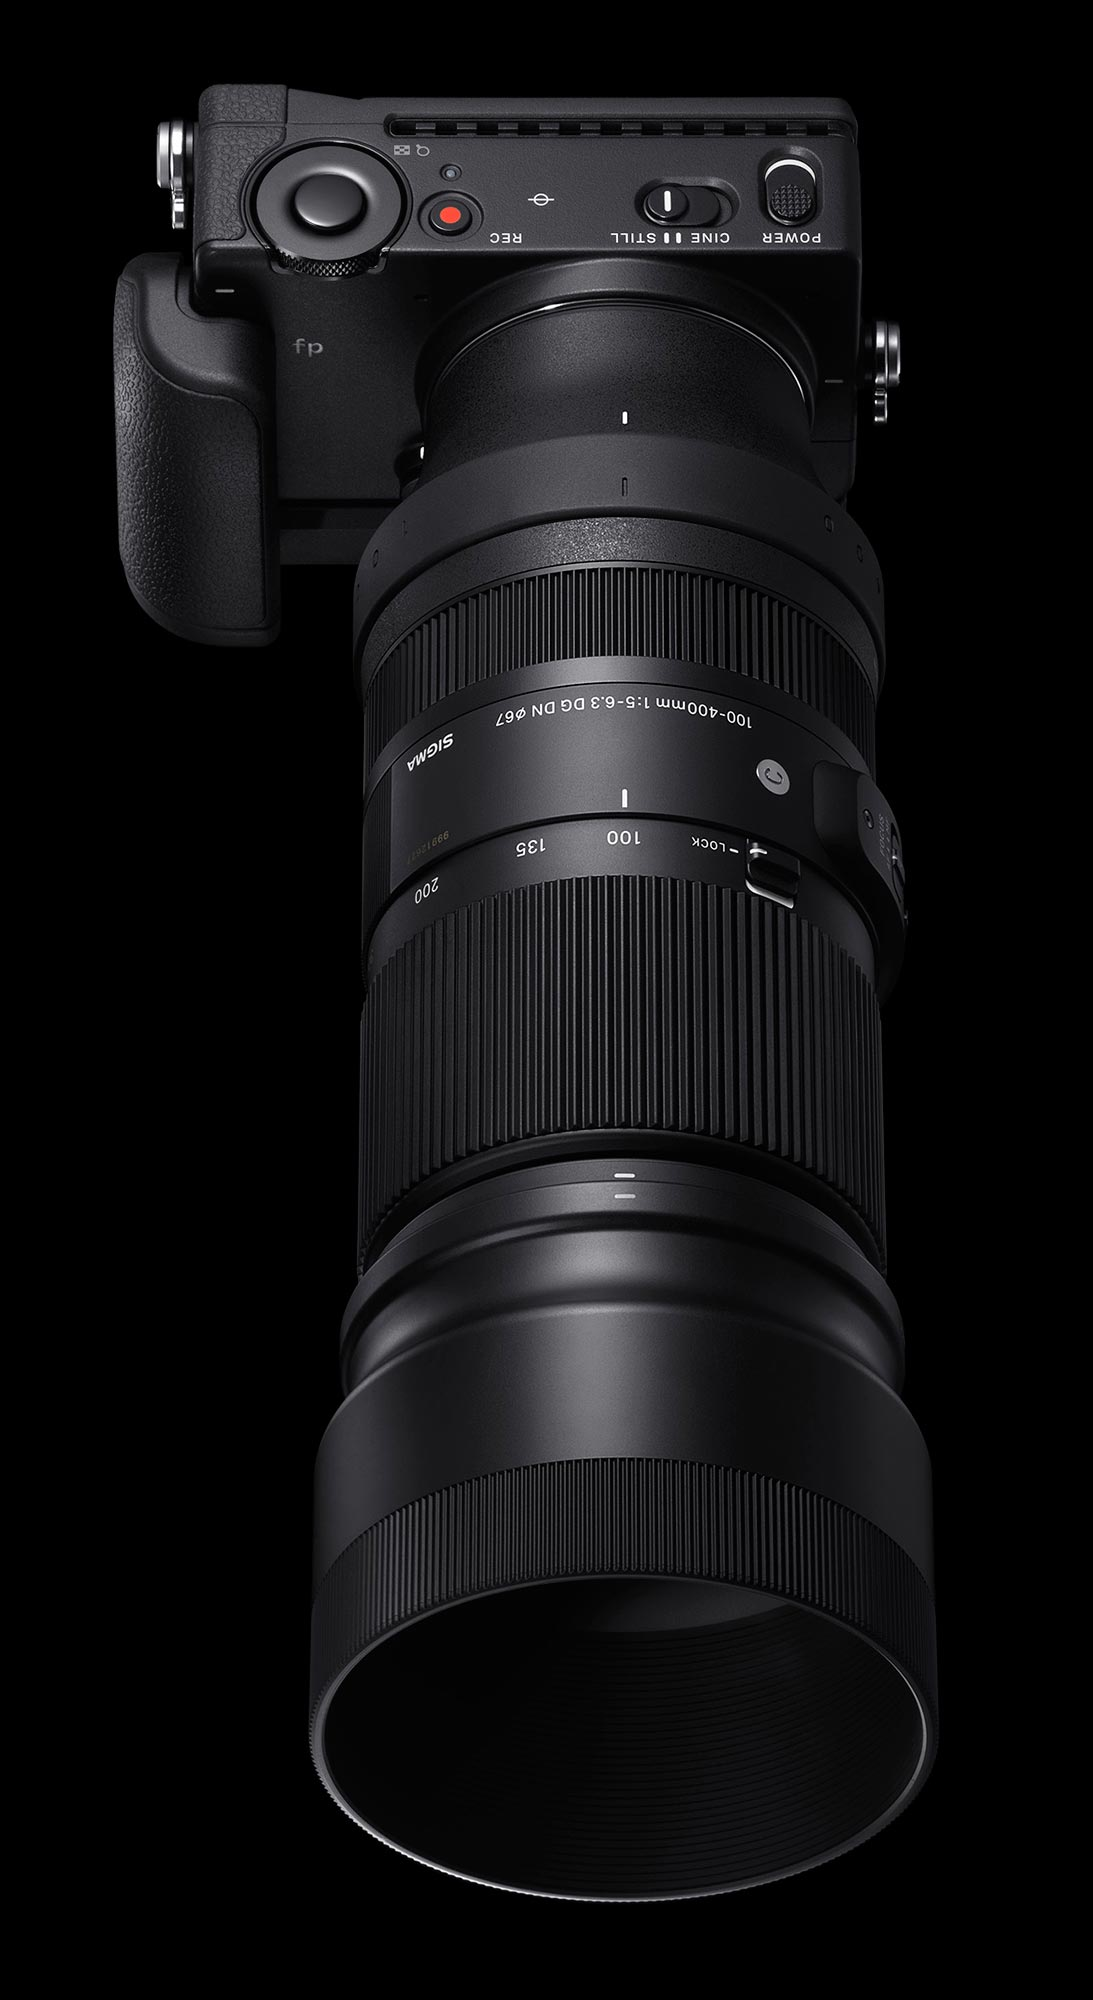 Sigma 100-400mm F5-6.3 DG DN OS: first for FF mirrorless cameras